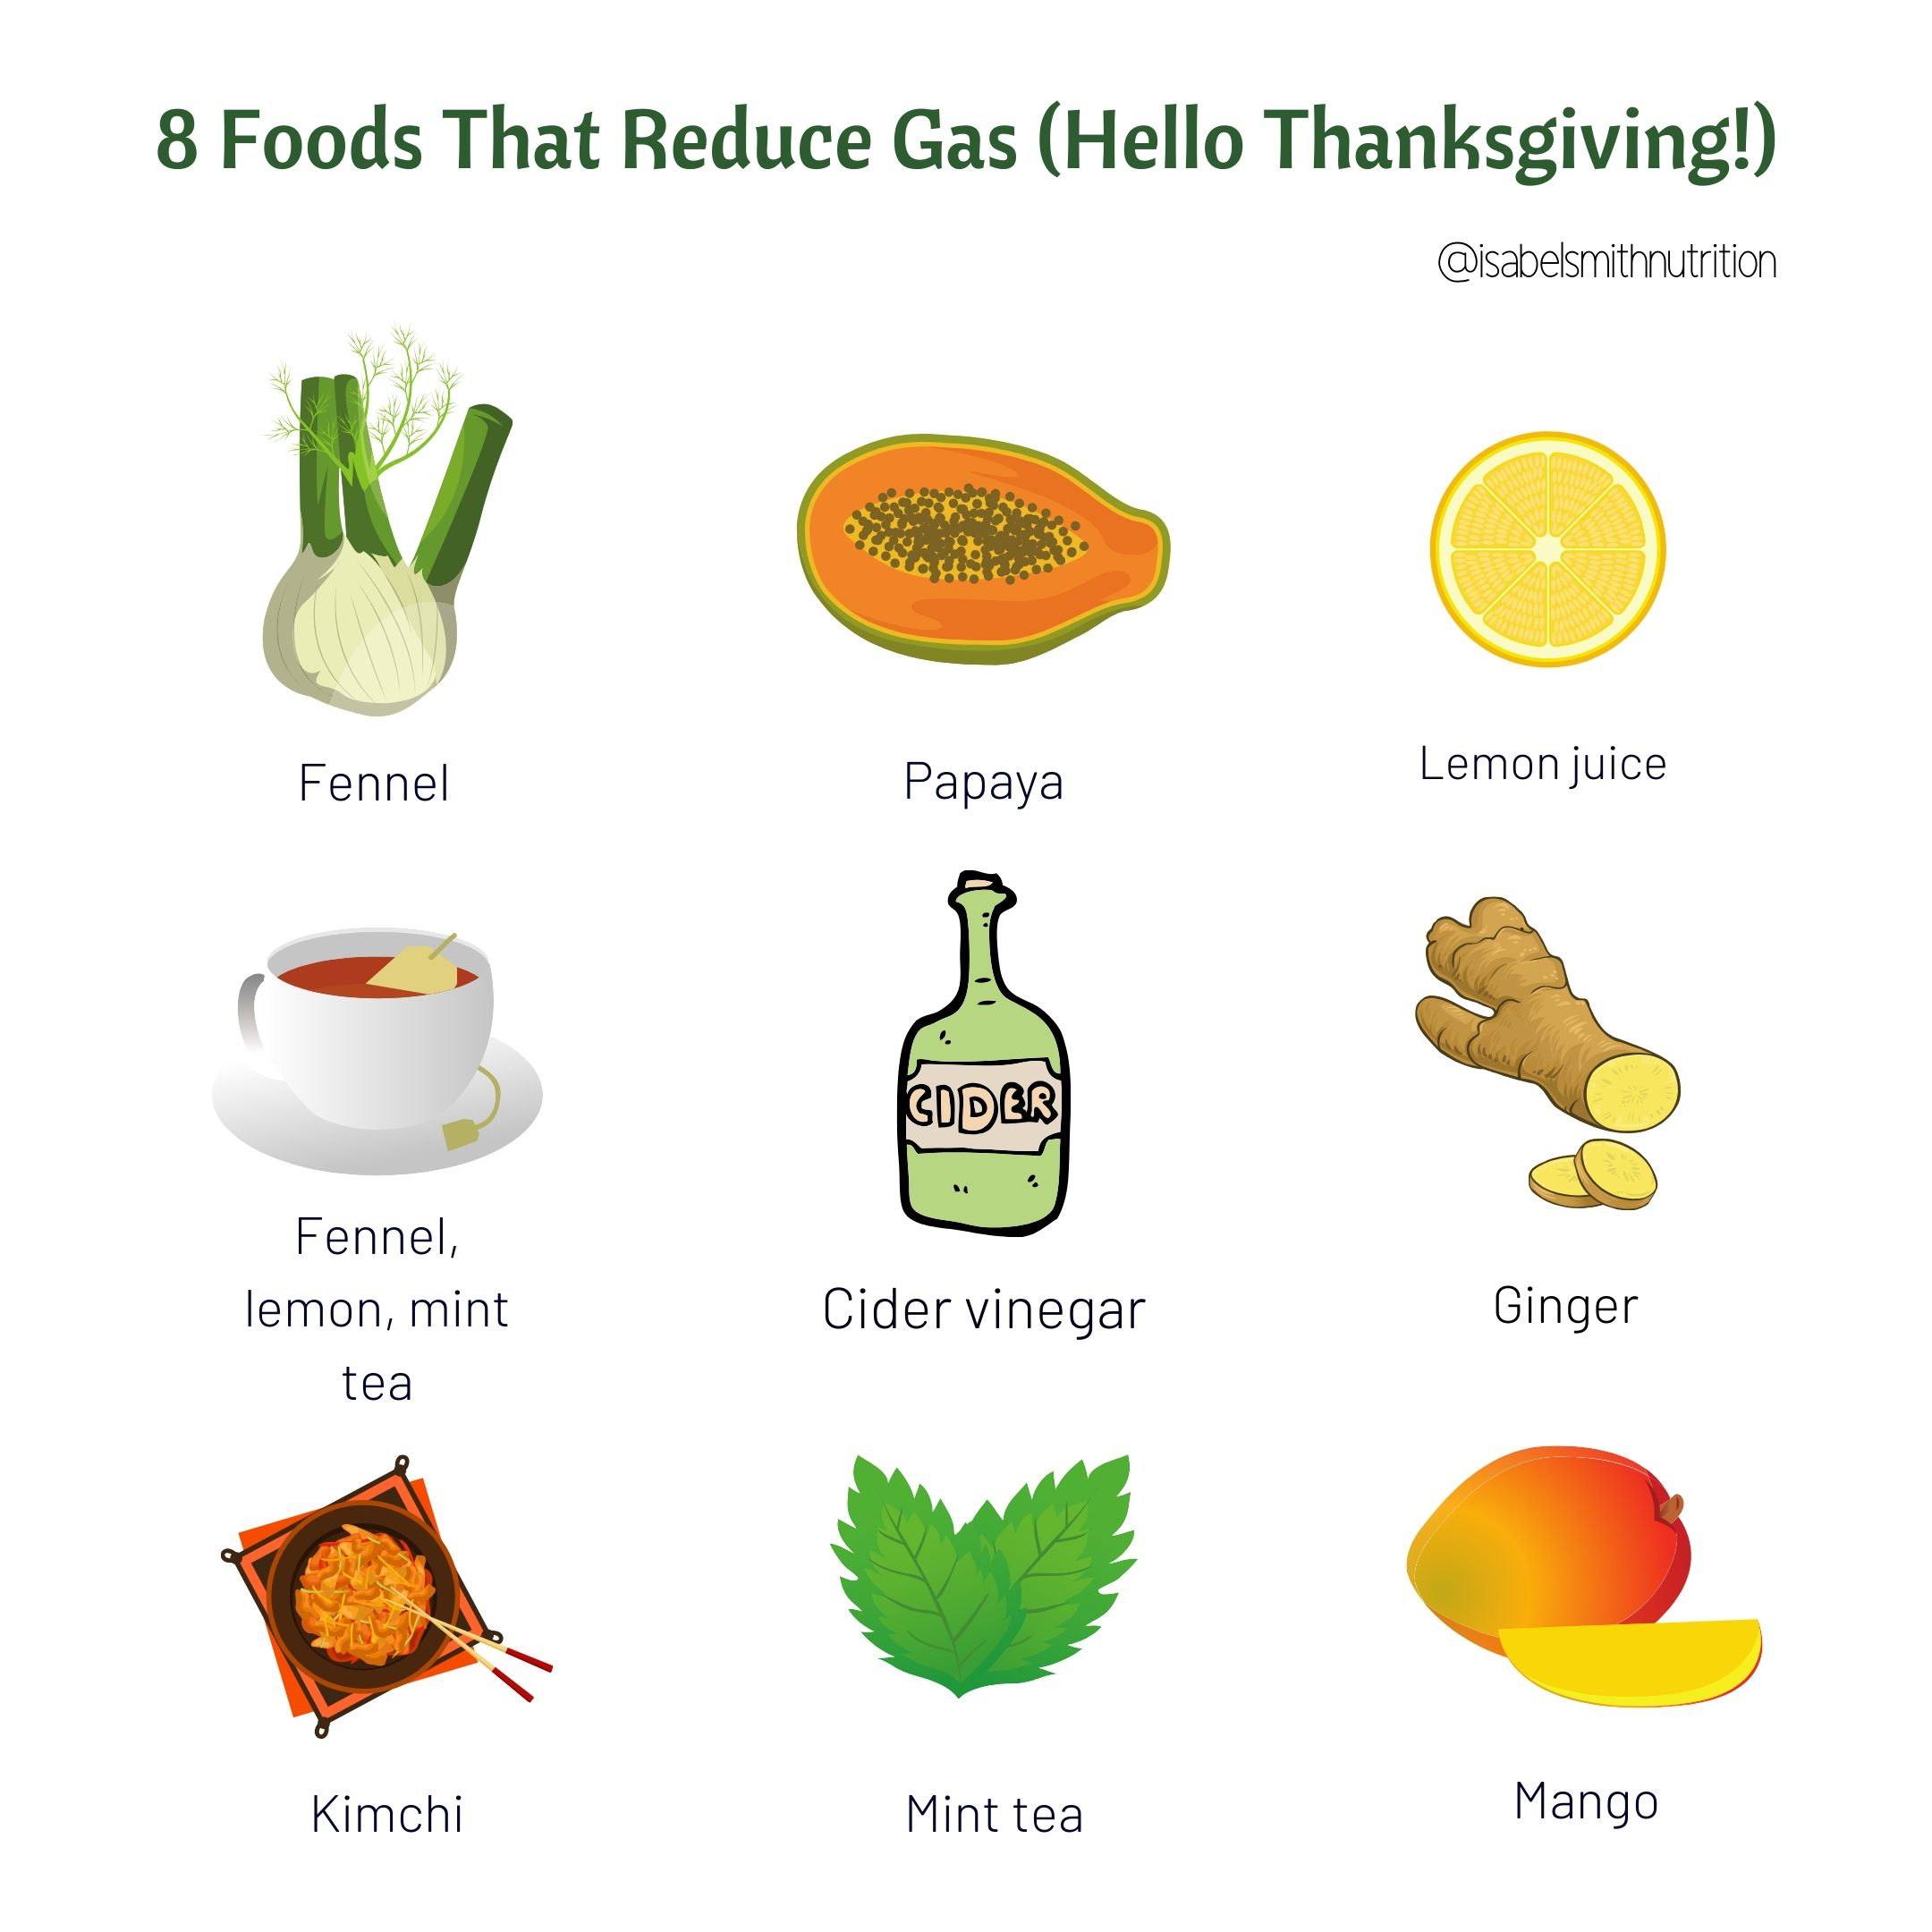 8 Foods That Reduce Gas